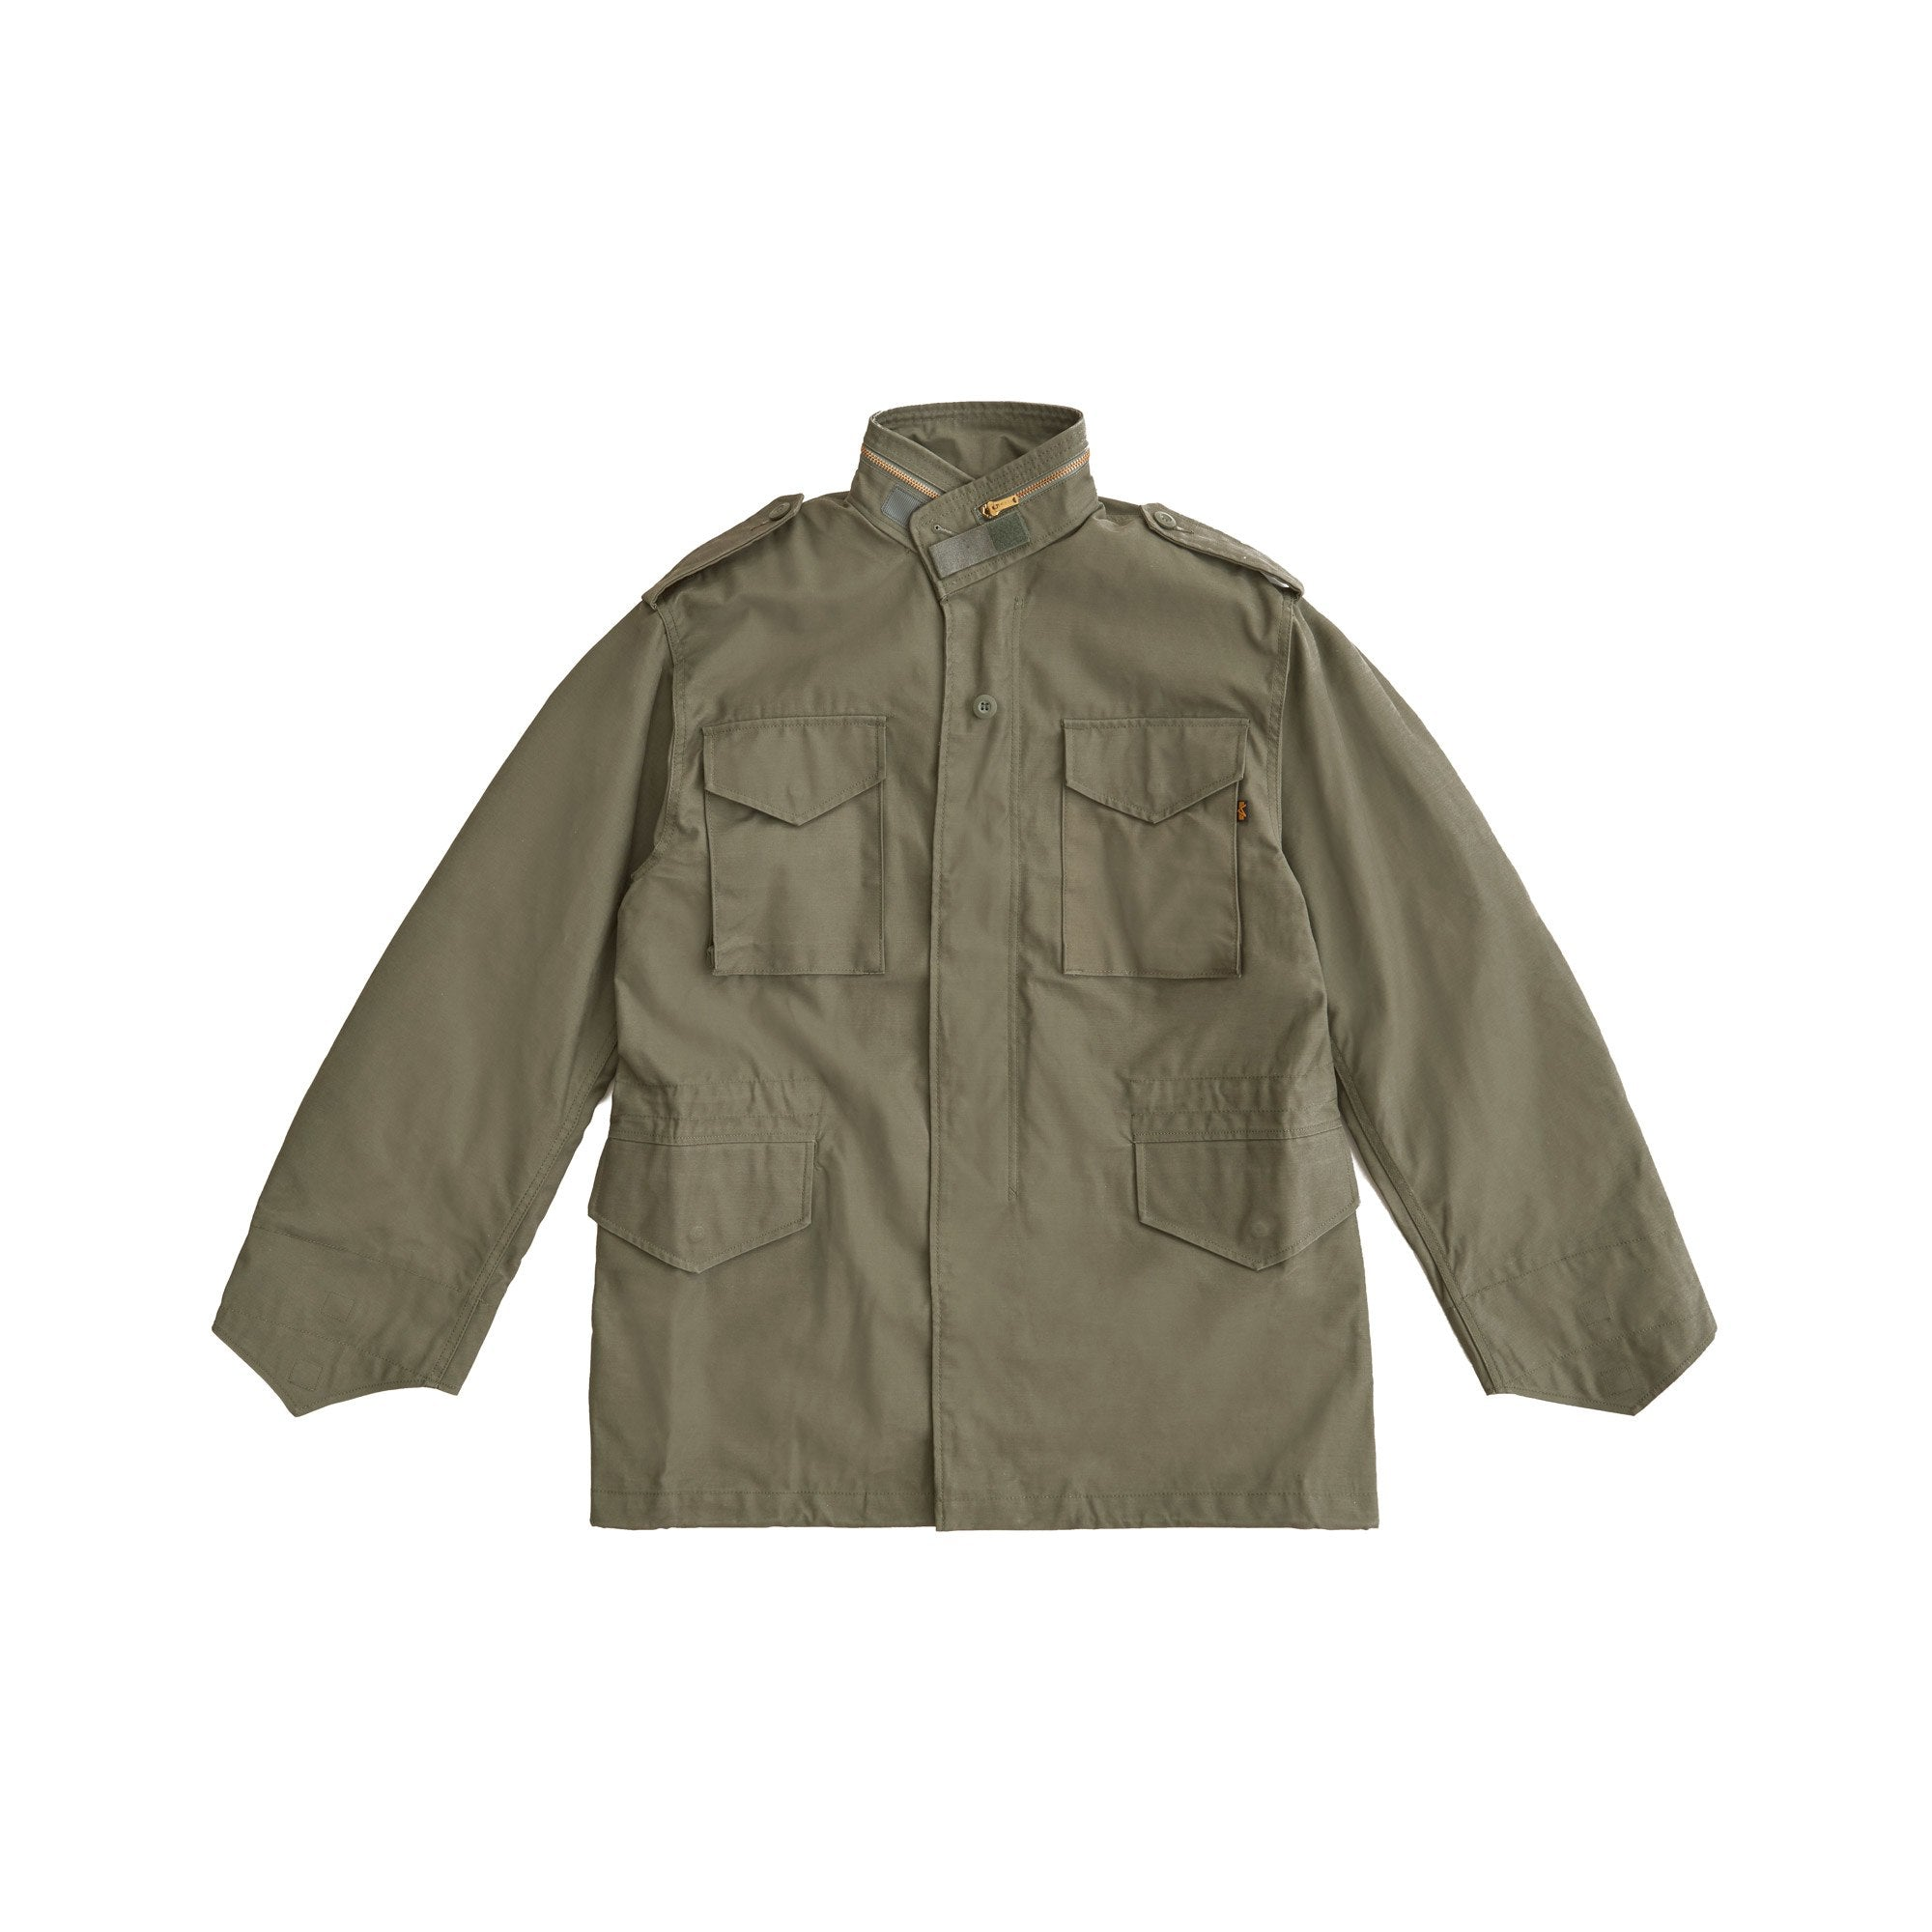 Alpha Industries | Authentic Bombers, Field Coats, and